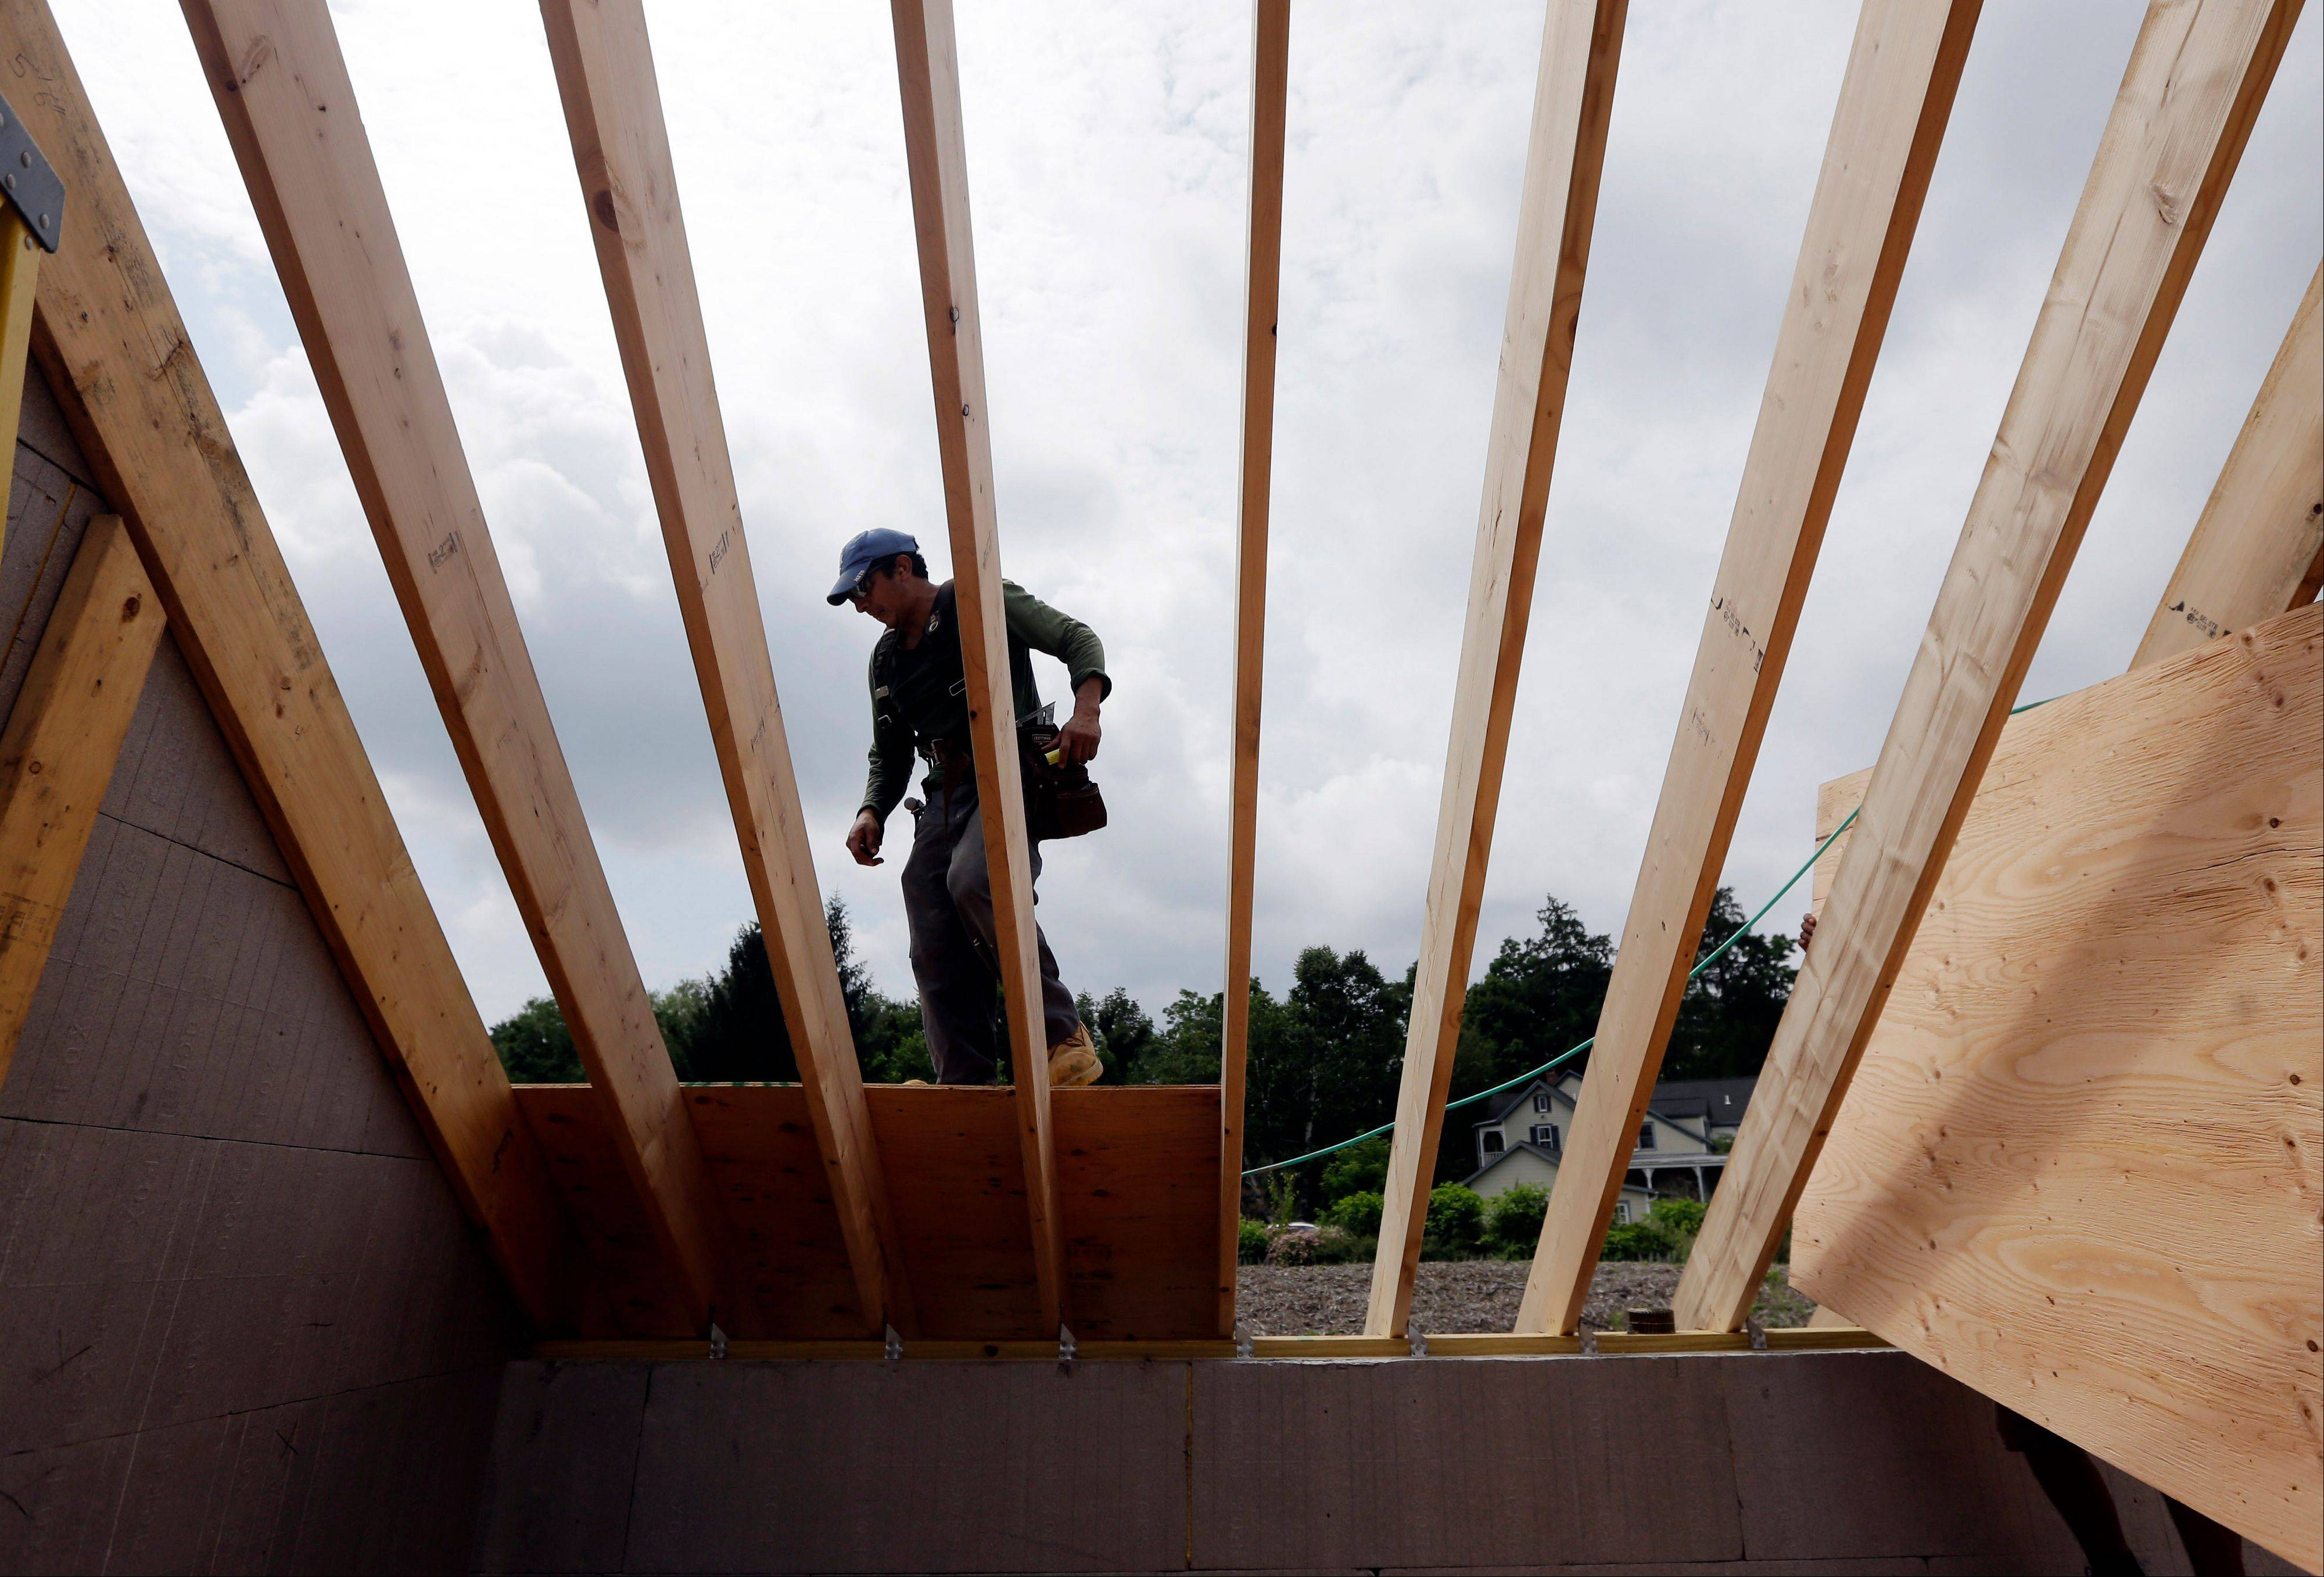 In this Tuesday, July 9, 2013, photo, a worker installs a roof on Tuesday, July 9, 2013, in New Paltz, N.Y. The National Association of Home Builders reports an increase in confidence among U.S. homebuilders for July on Tuesday, July 16, 2013.